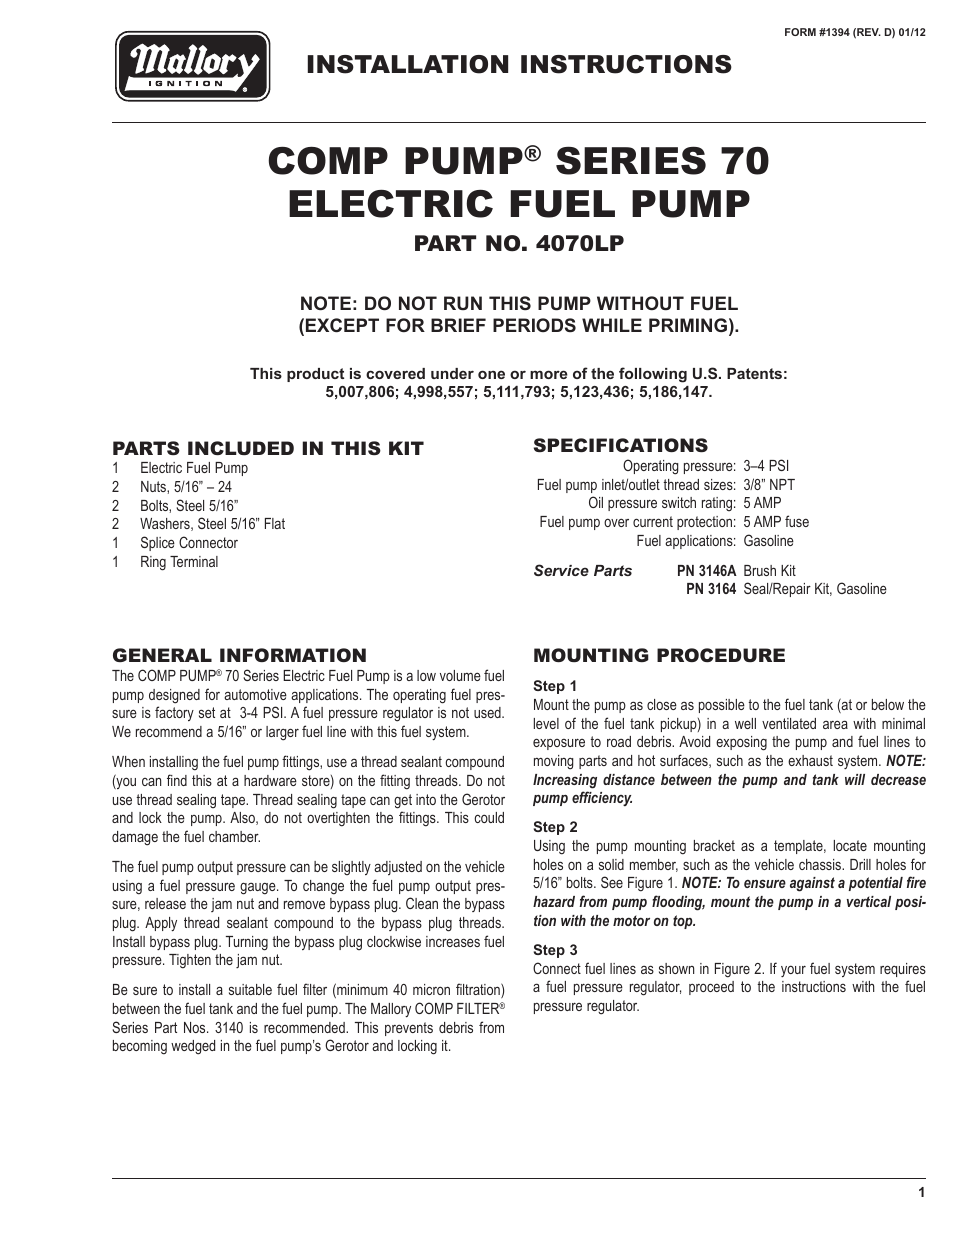 hight resolution of mallory ignition mallory comp pump series 70 electric fuel pump 4070lp user manual 4 pages